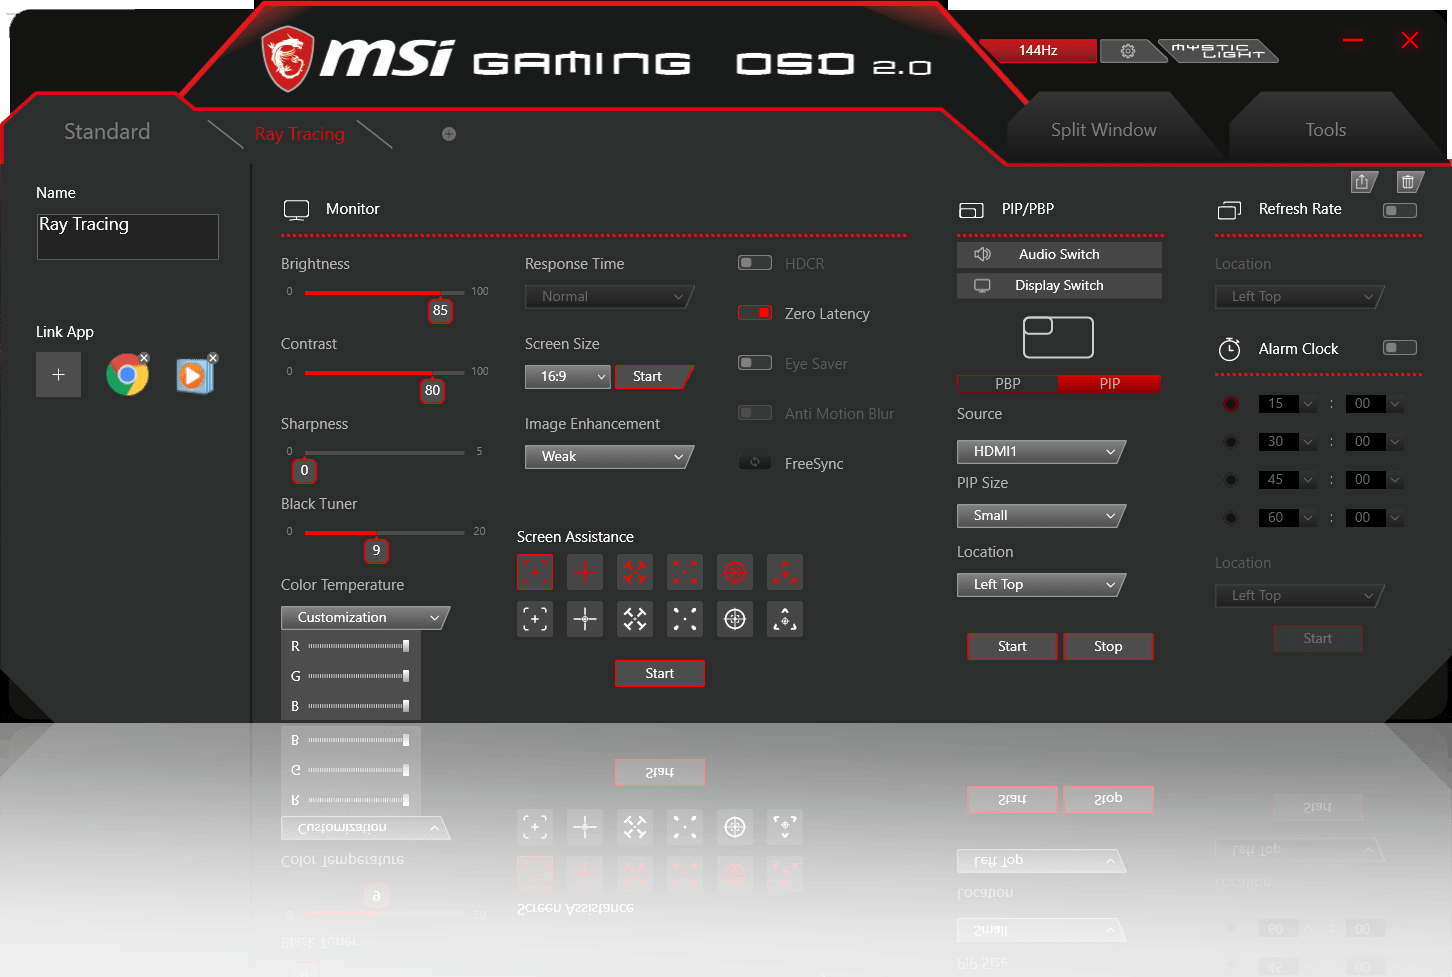 screenshot of gaming OSD